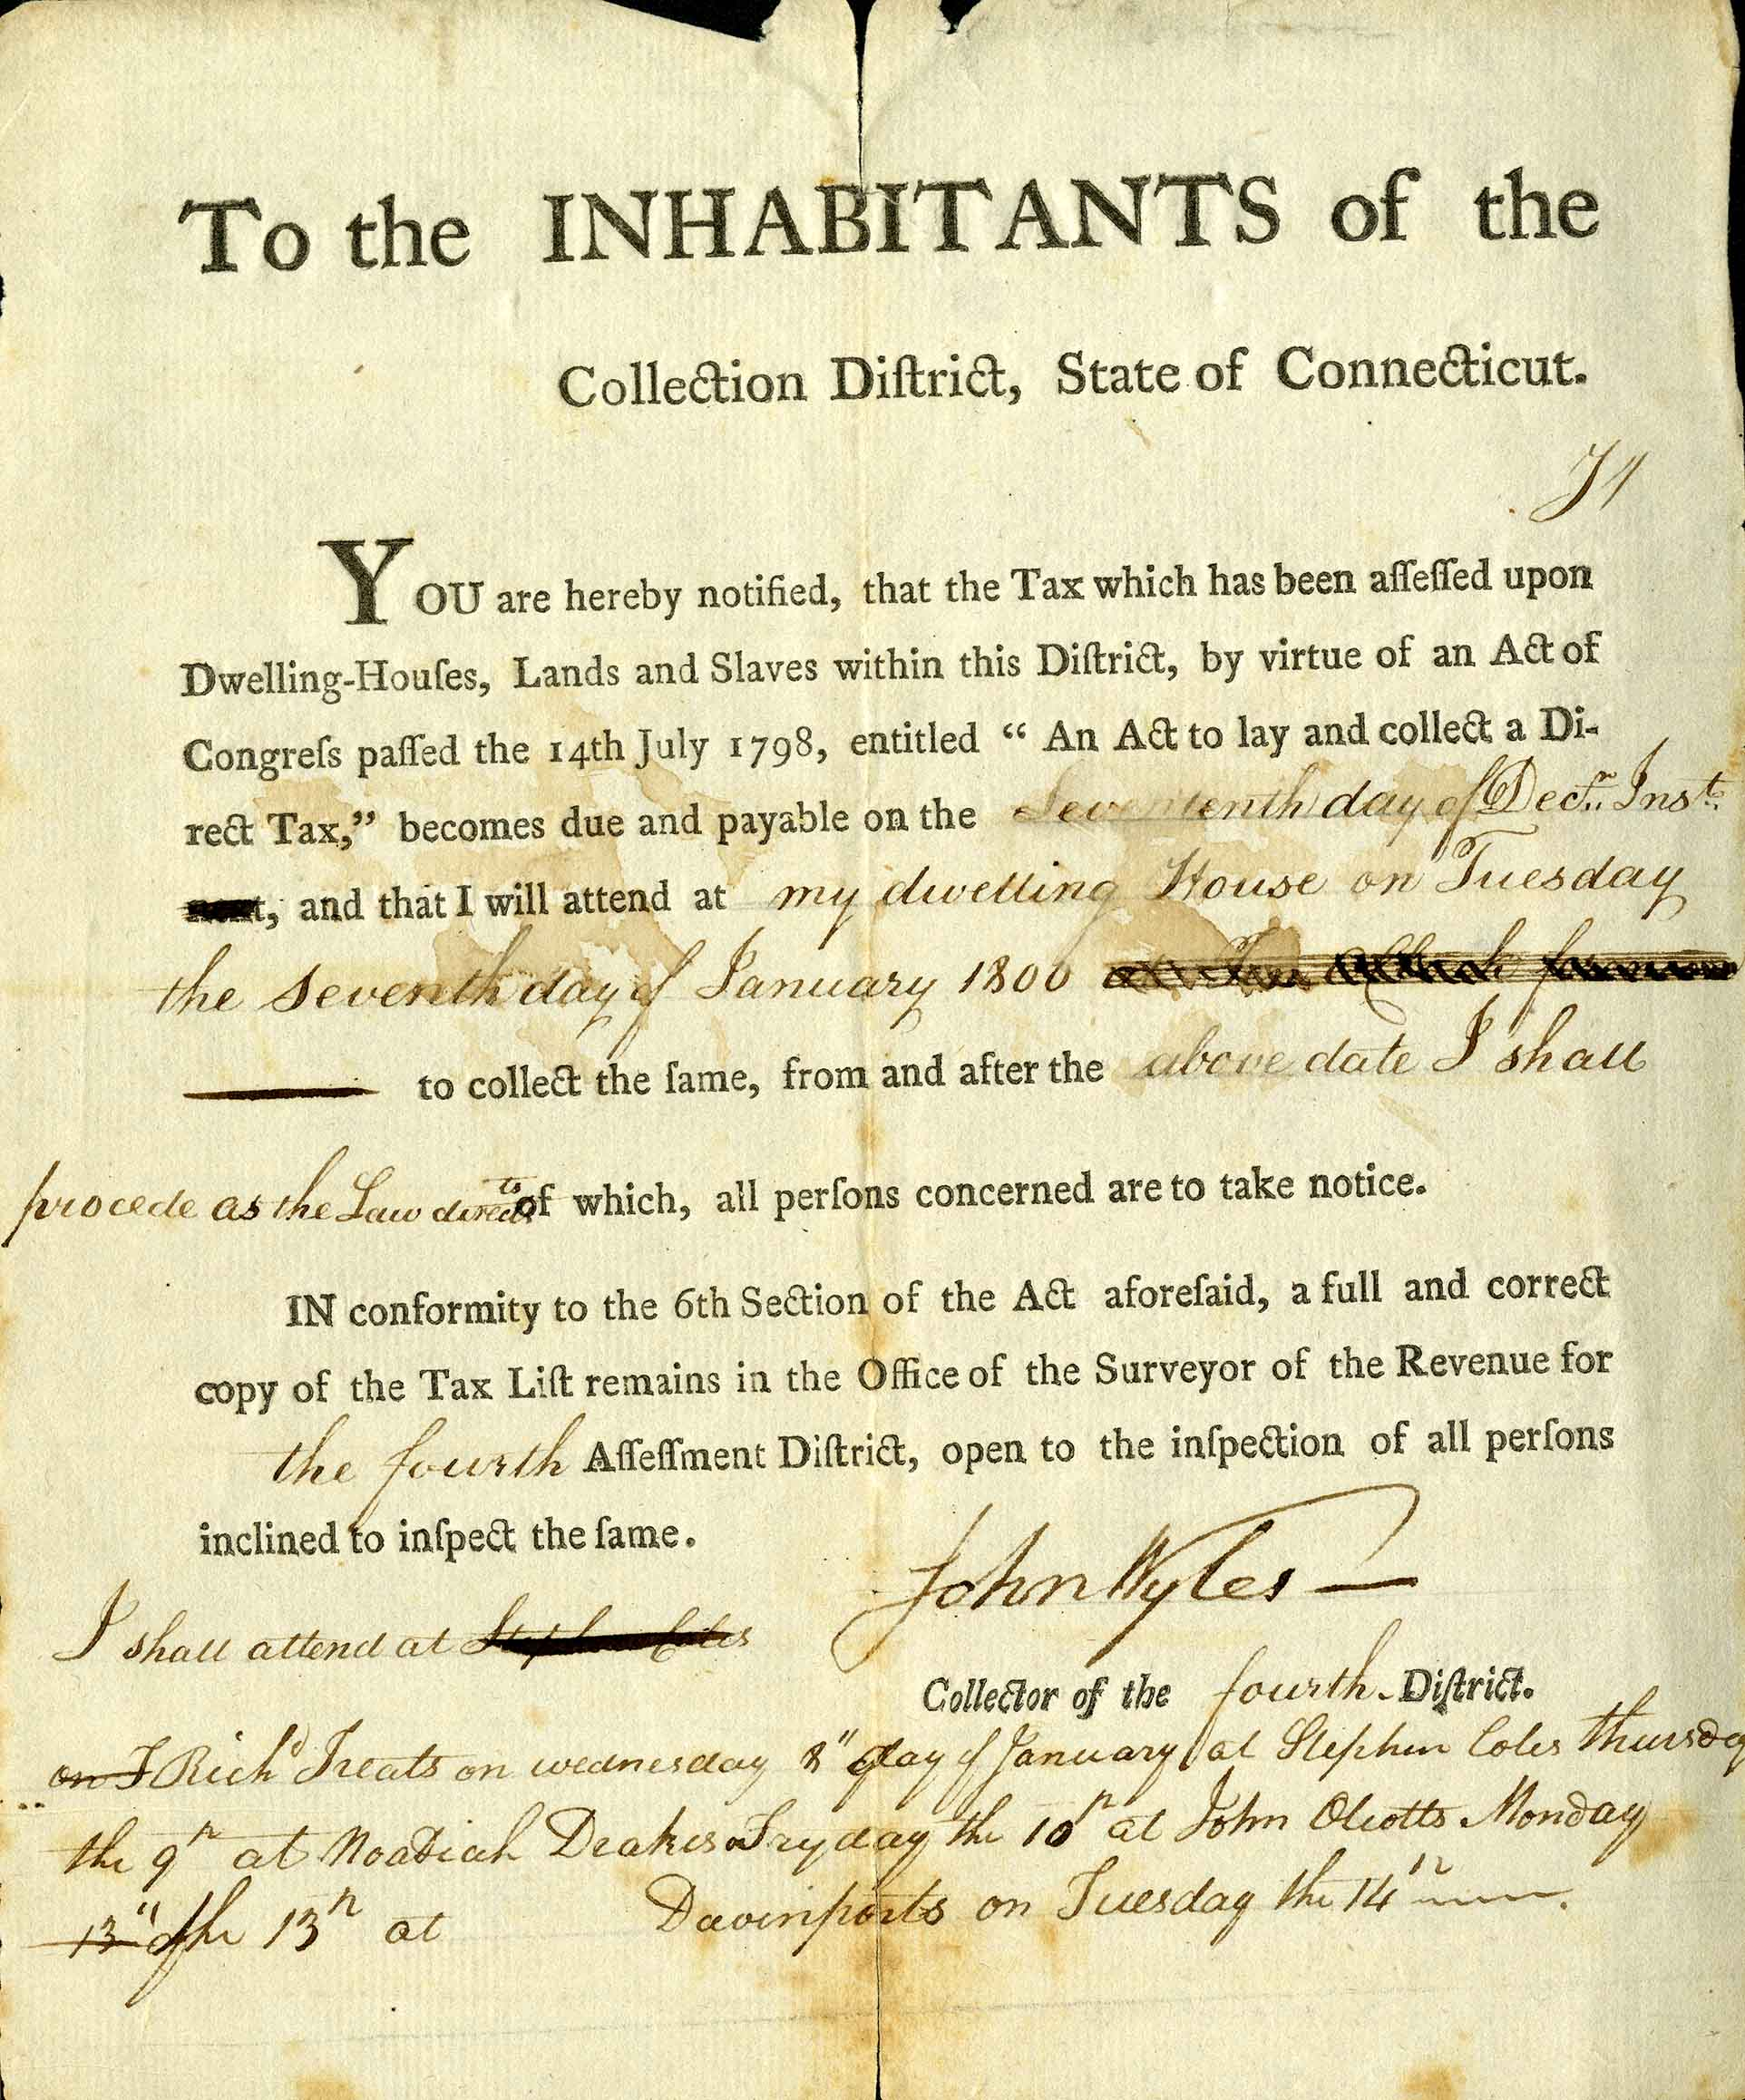 Connecticut tax notice from 1800 concerning houses, land, and slaves. From the Gaines Collection of Americana.